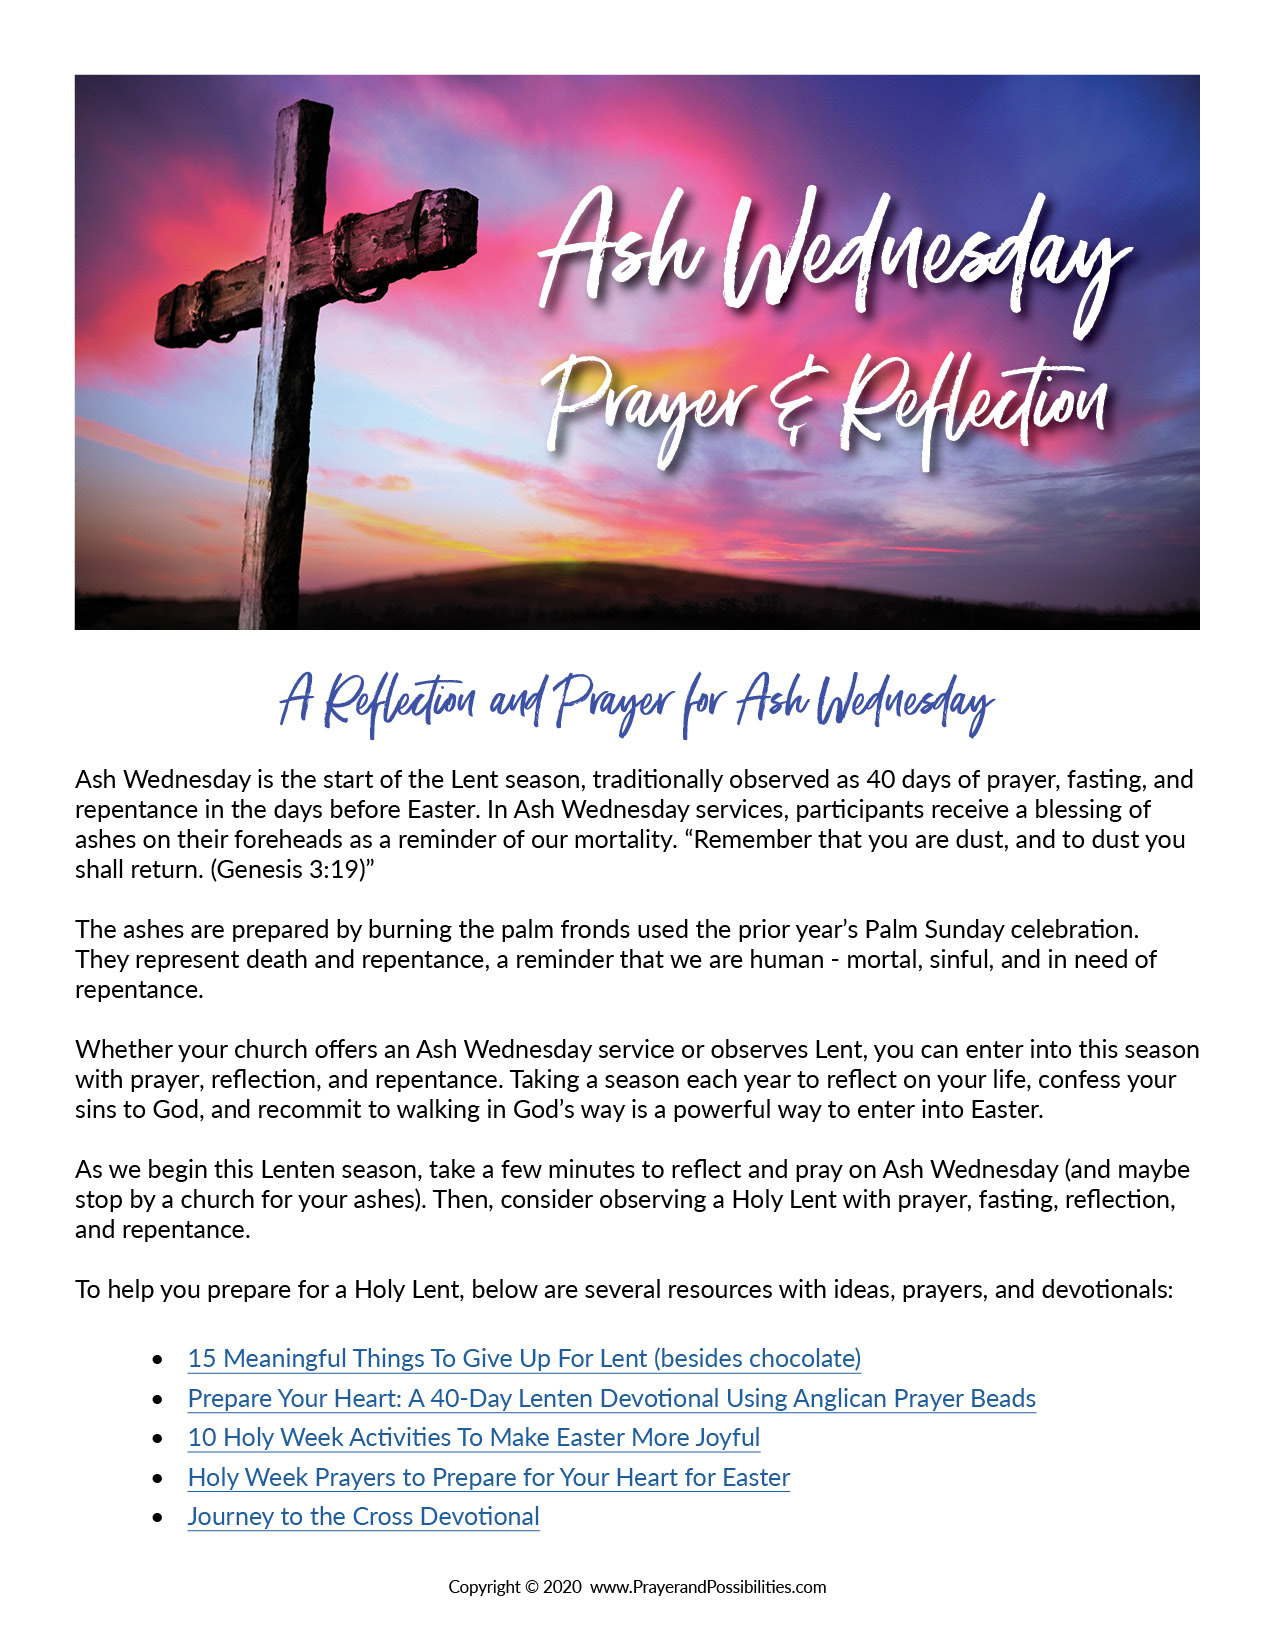 Ash Wednesday prayer & reflection free printable